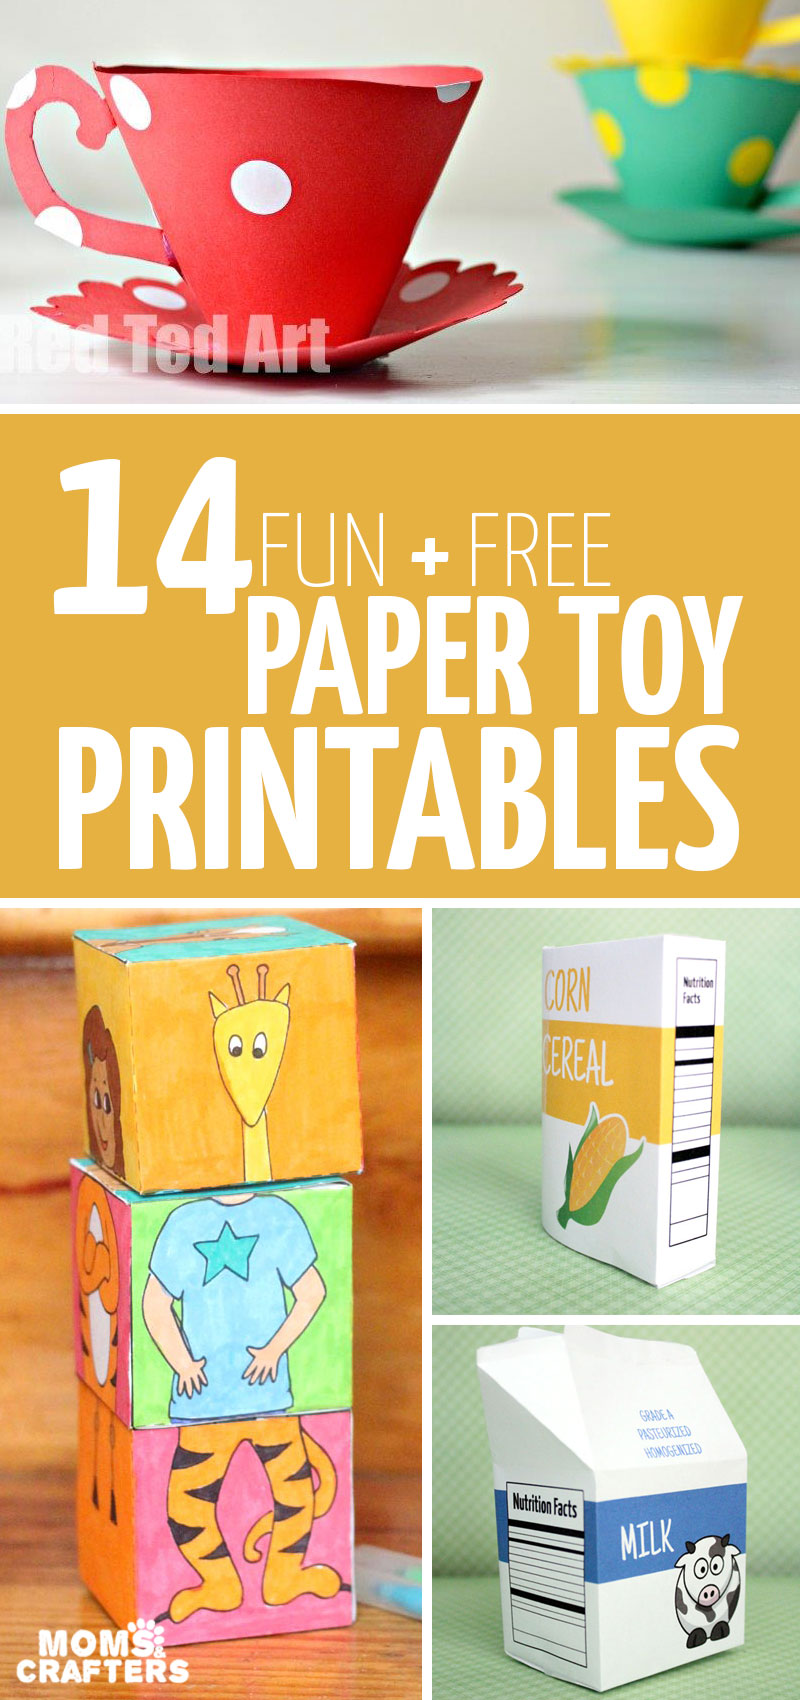 Click for a list of super cool free printable paper toy templates you can download! You'll love these paper crafts for moms and kids that can be played with when you're done crafting them #papercraft #papertoy #coloringpage